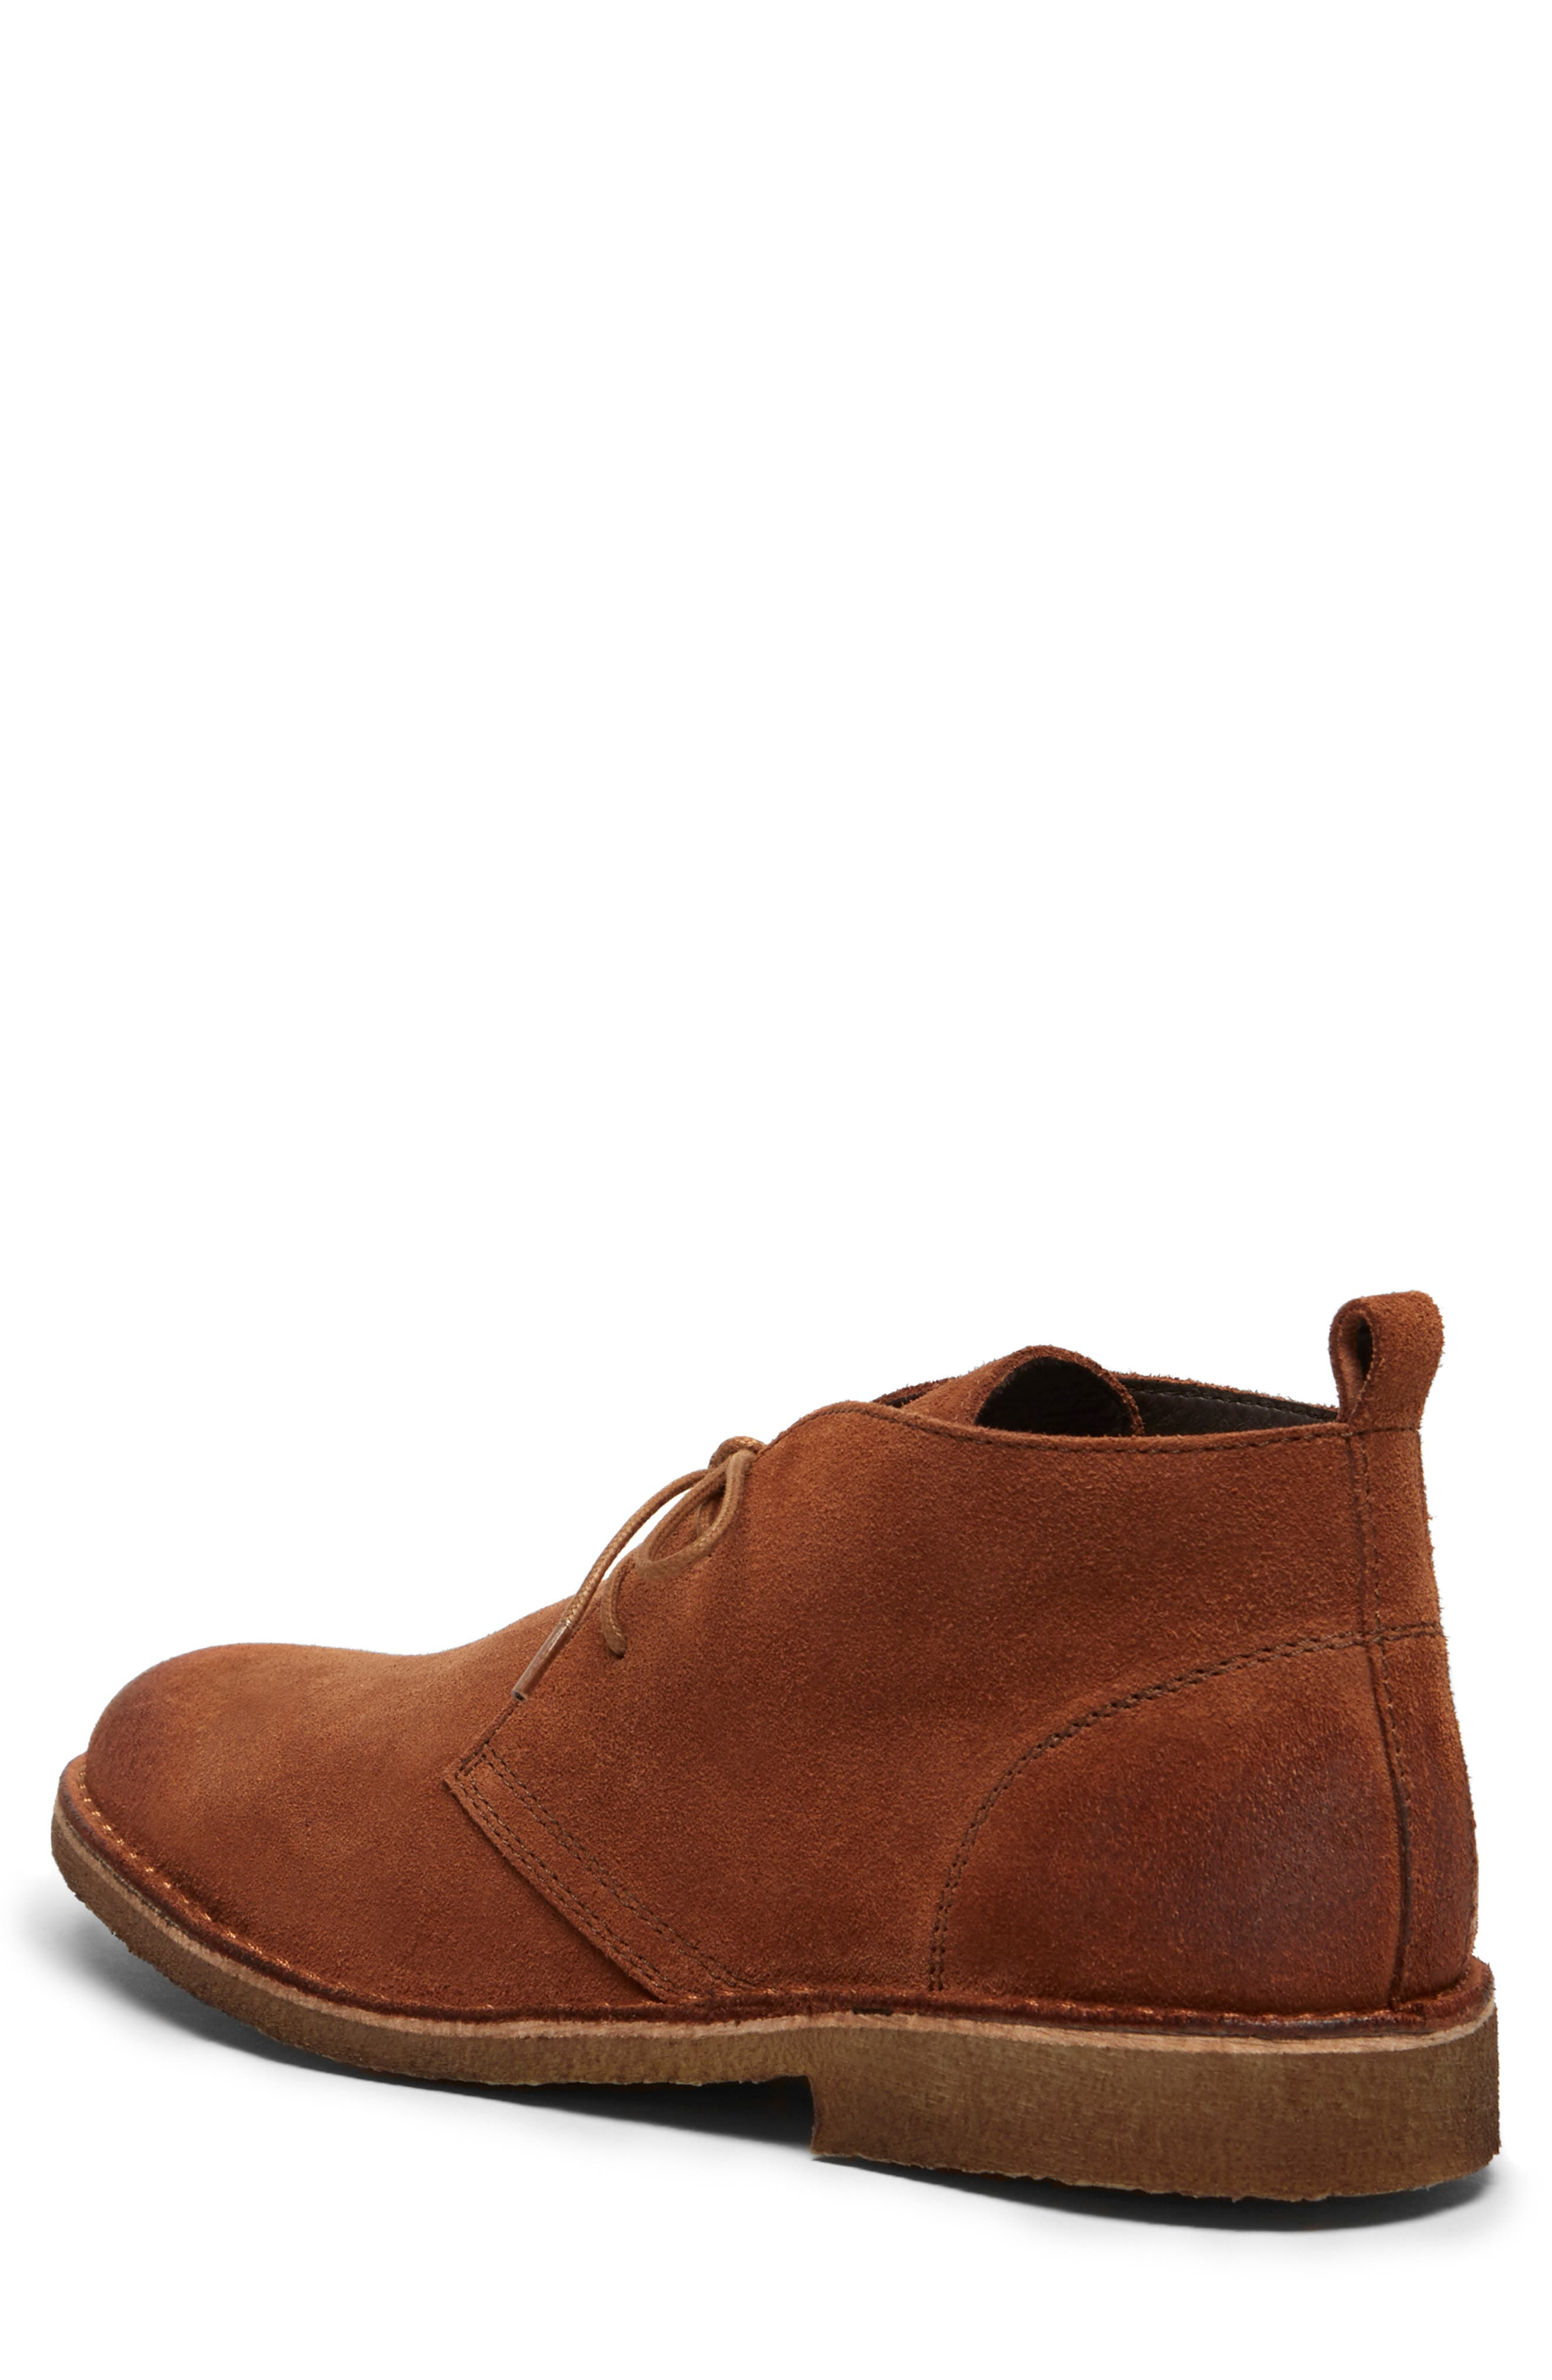 Hewitt Chukka Boot,                             Alternate thumbnail 2, color,                             RUST SUEDE